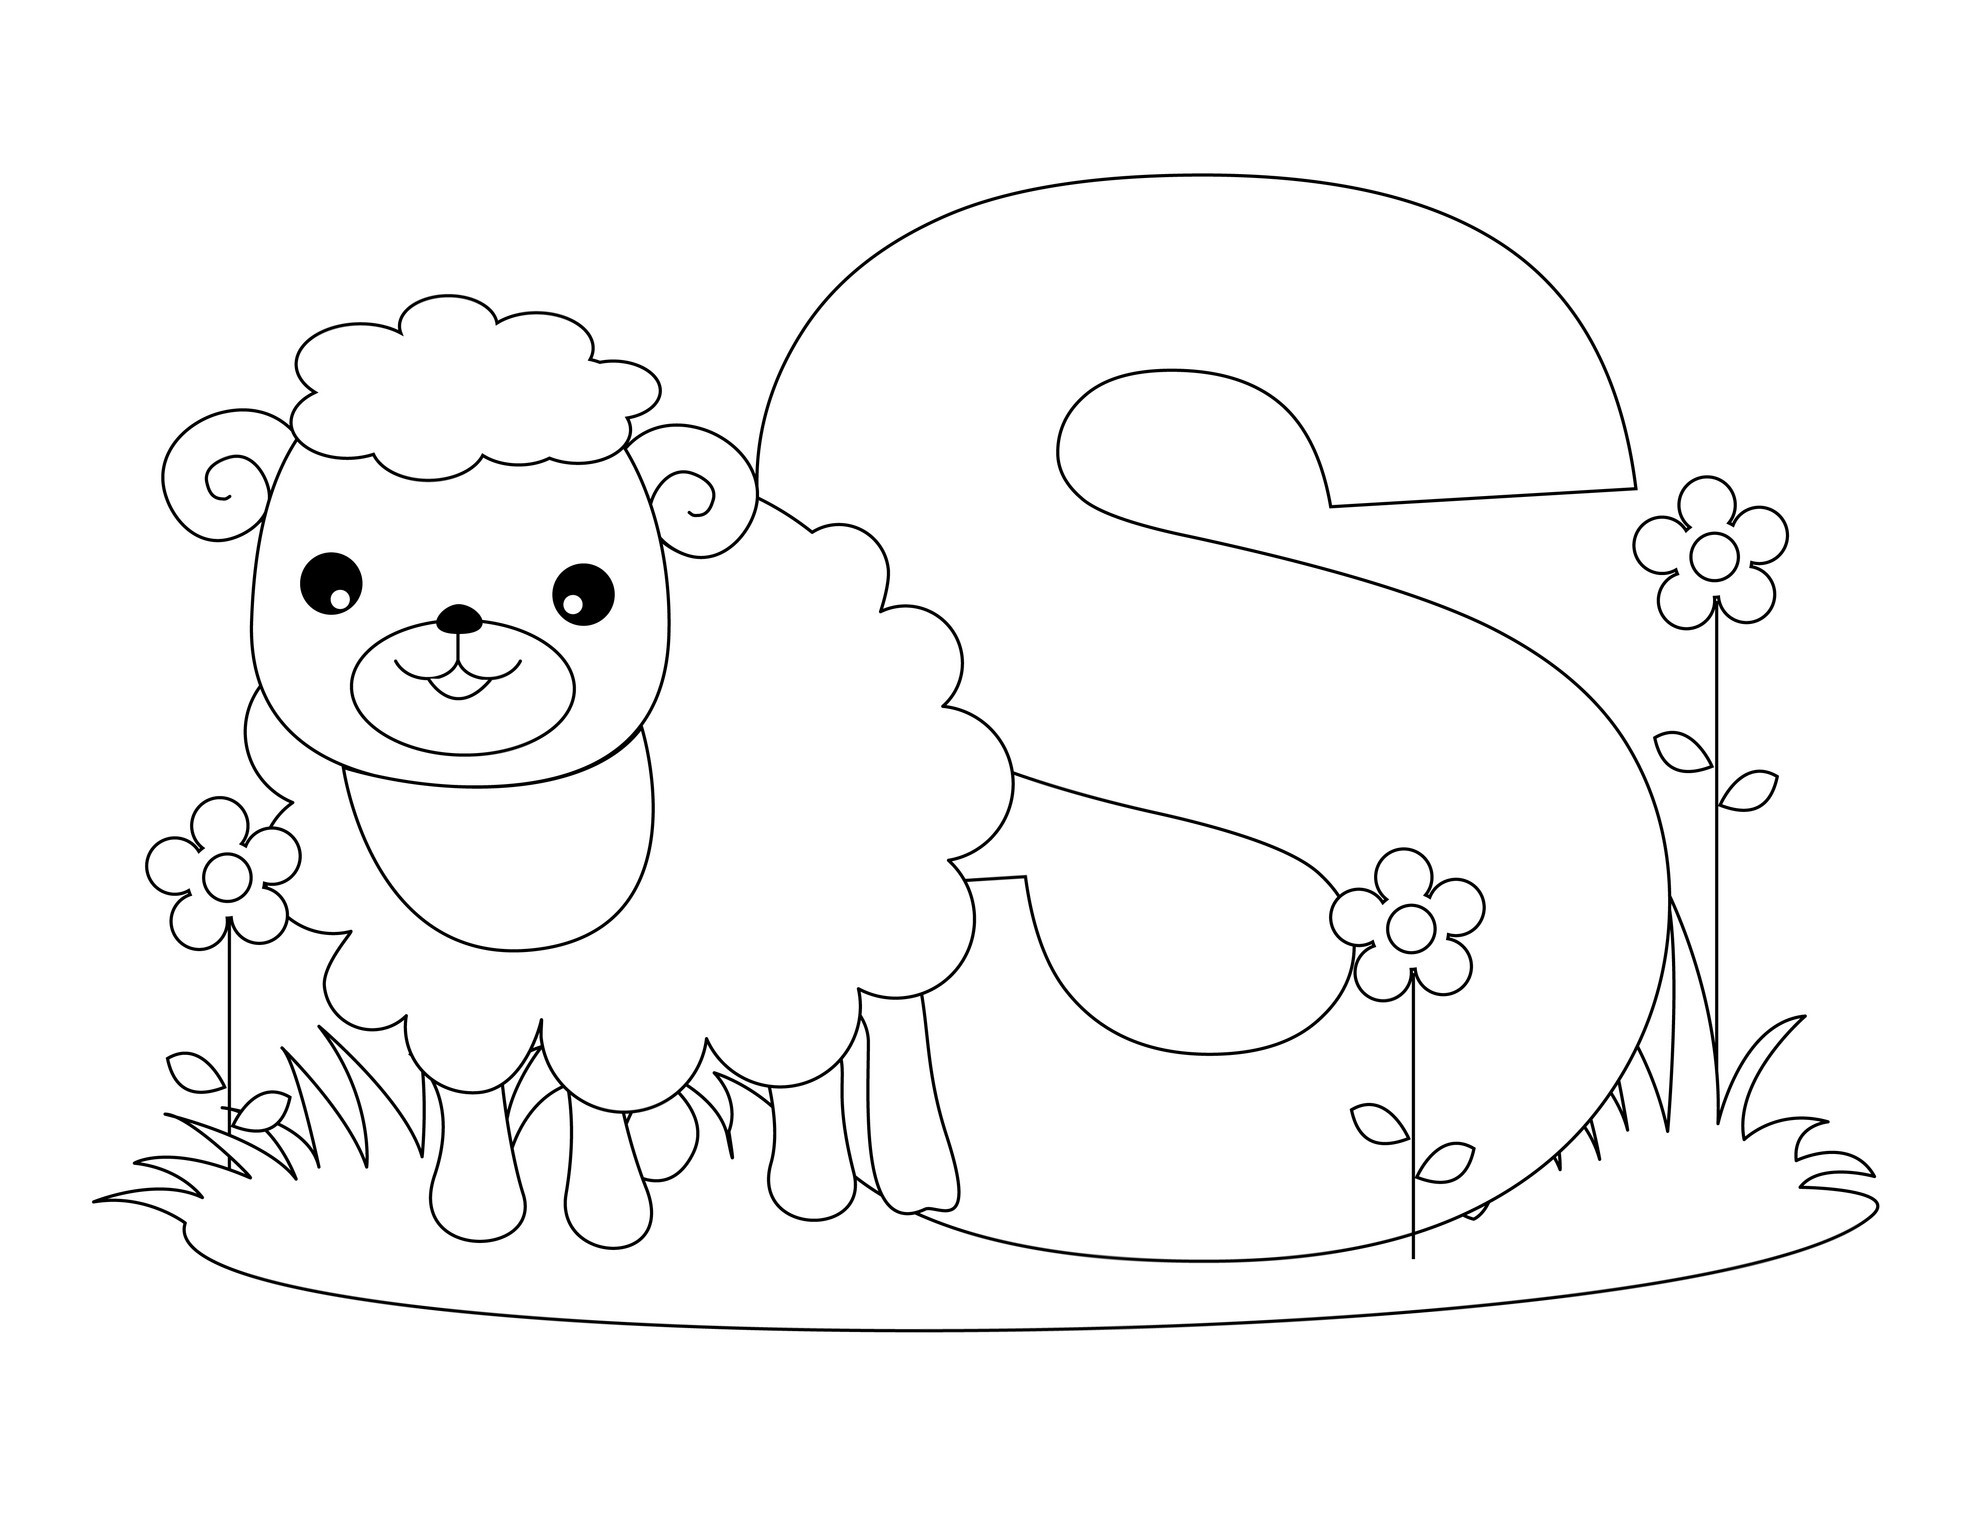 Block Letter Coloring Pages At Getcolorings